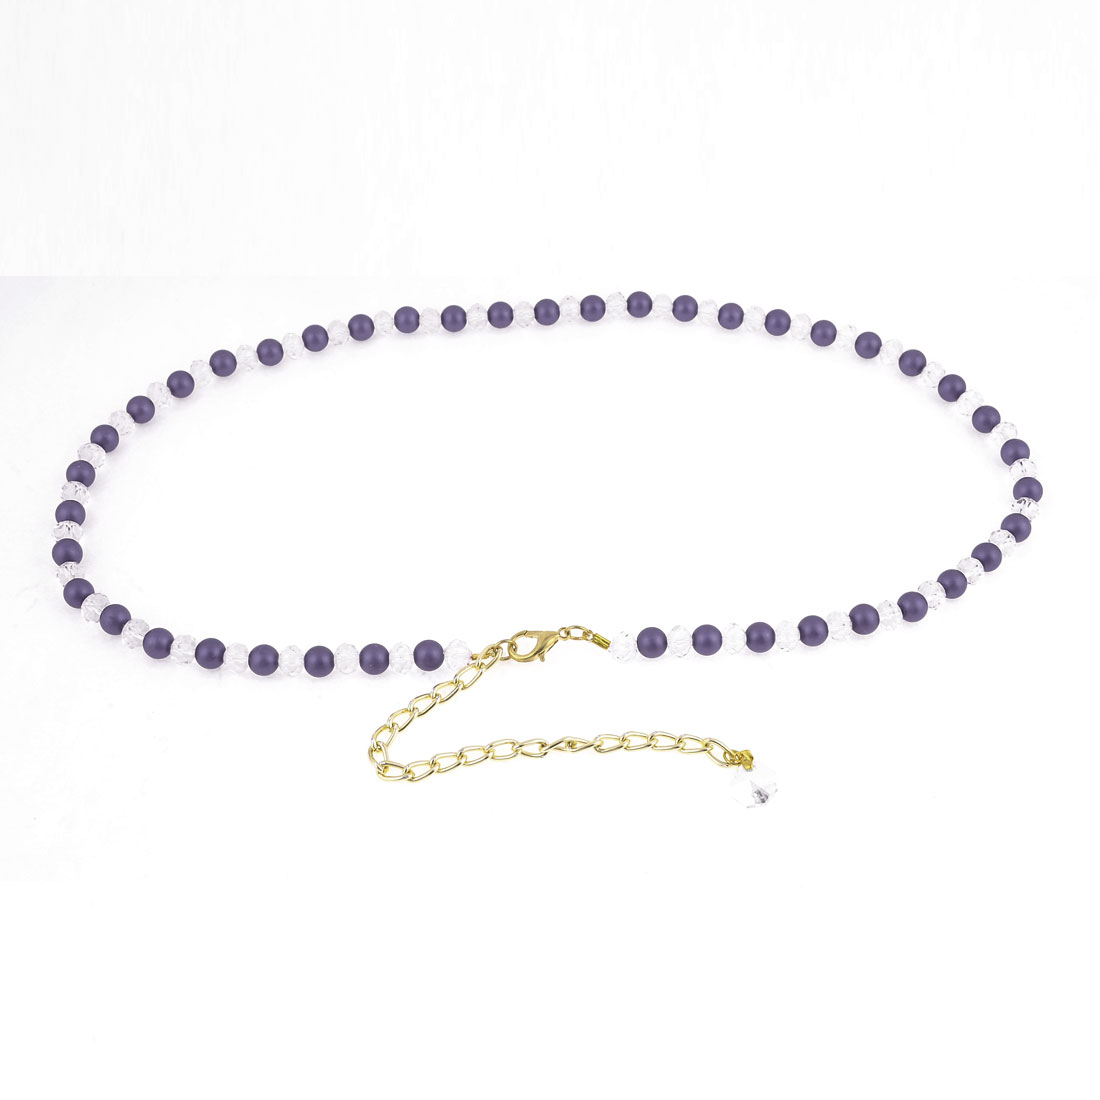 Lobster Clasp Plastic Beads Decoration Adjustable Chain Waist Belt Band Purple